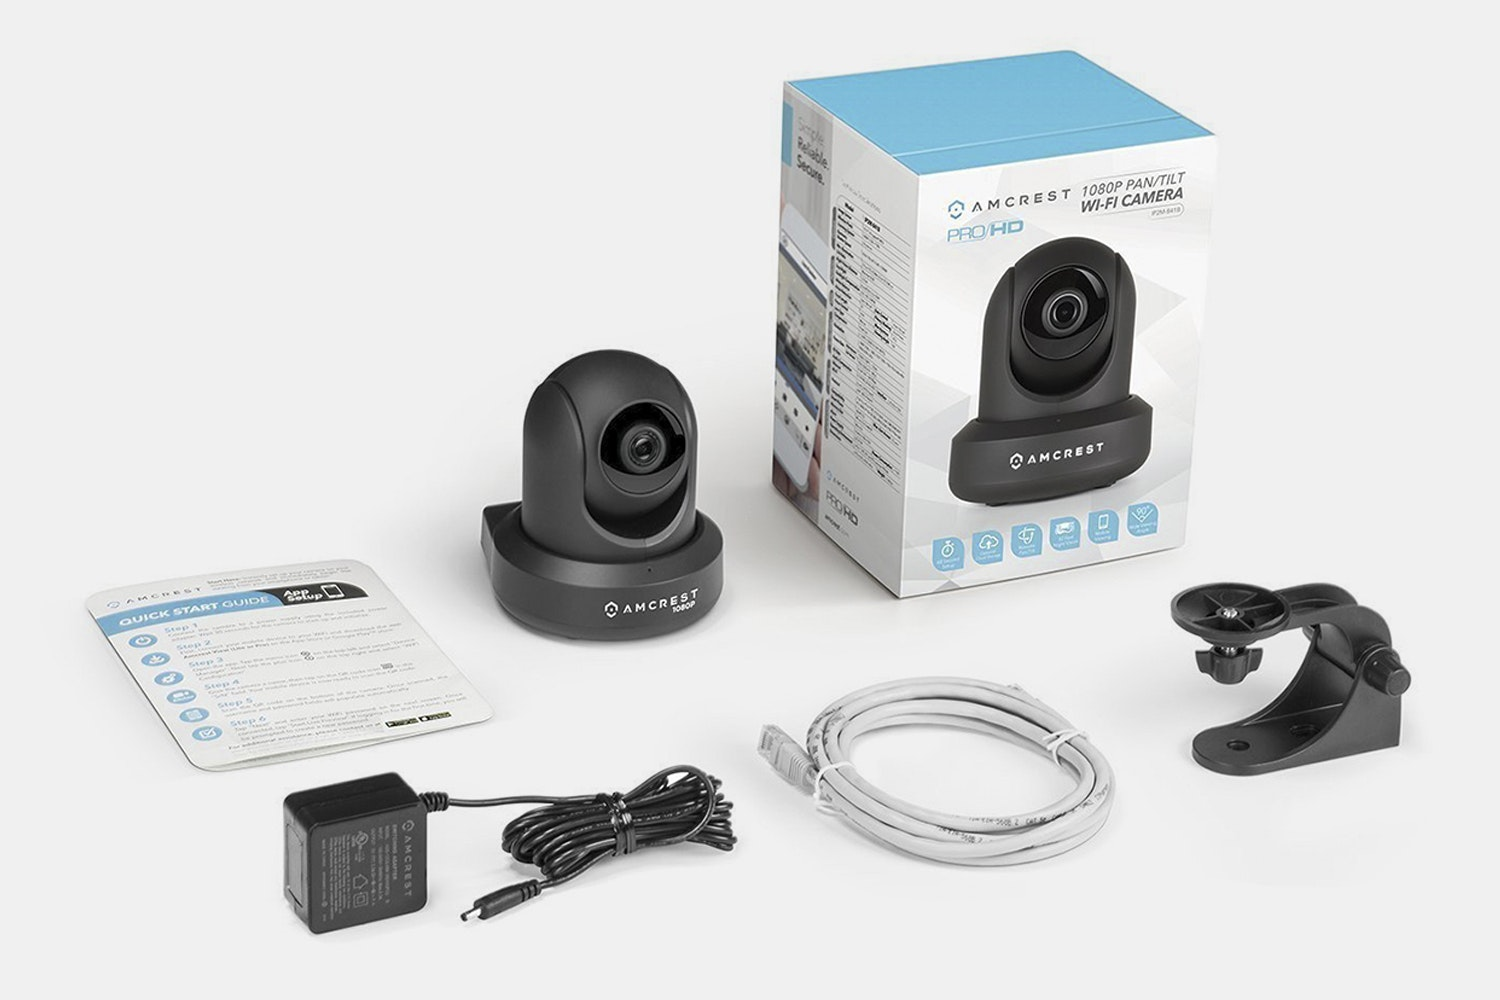 Amcrest 1080p WiFi w/Audio & Night Vision Camera